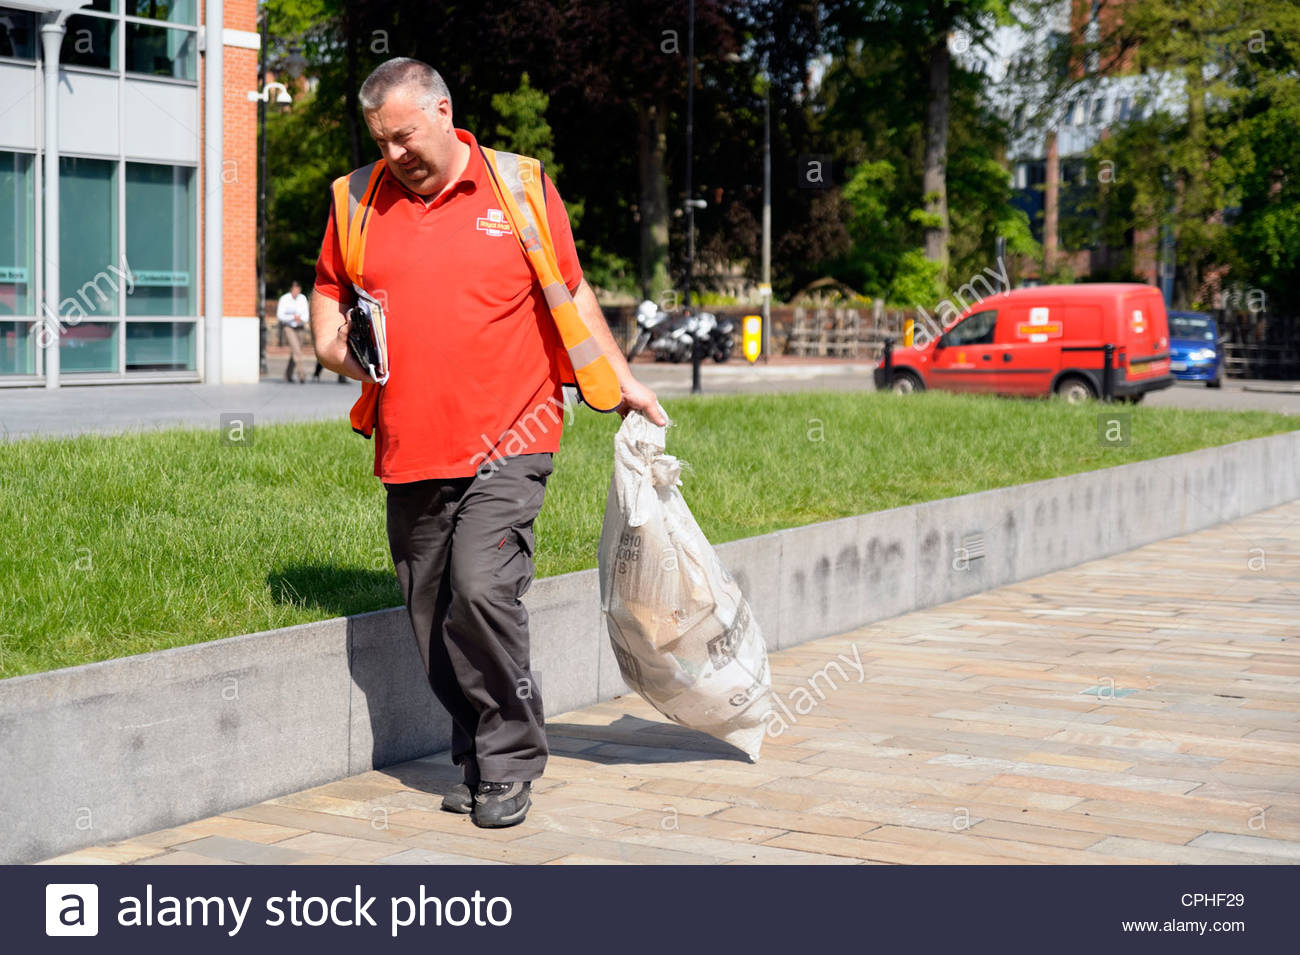 Postman carrying a sack of letters in Reading, Berkshire, UK. Royal Mail delivery man. - Stock Image